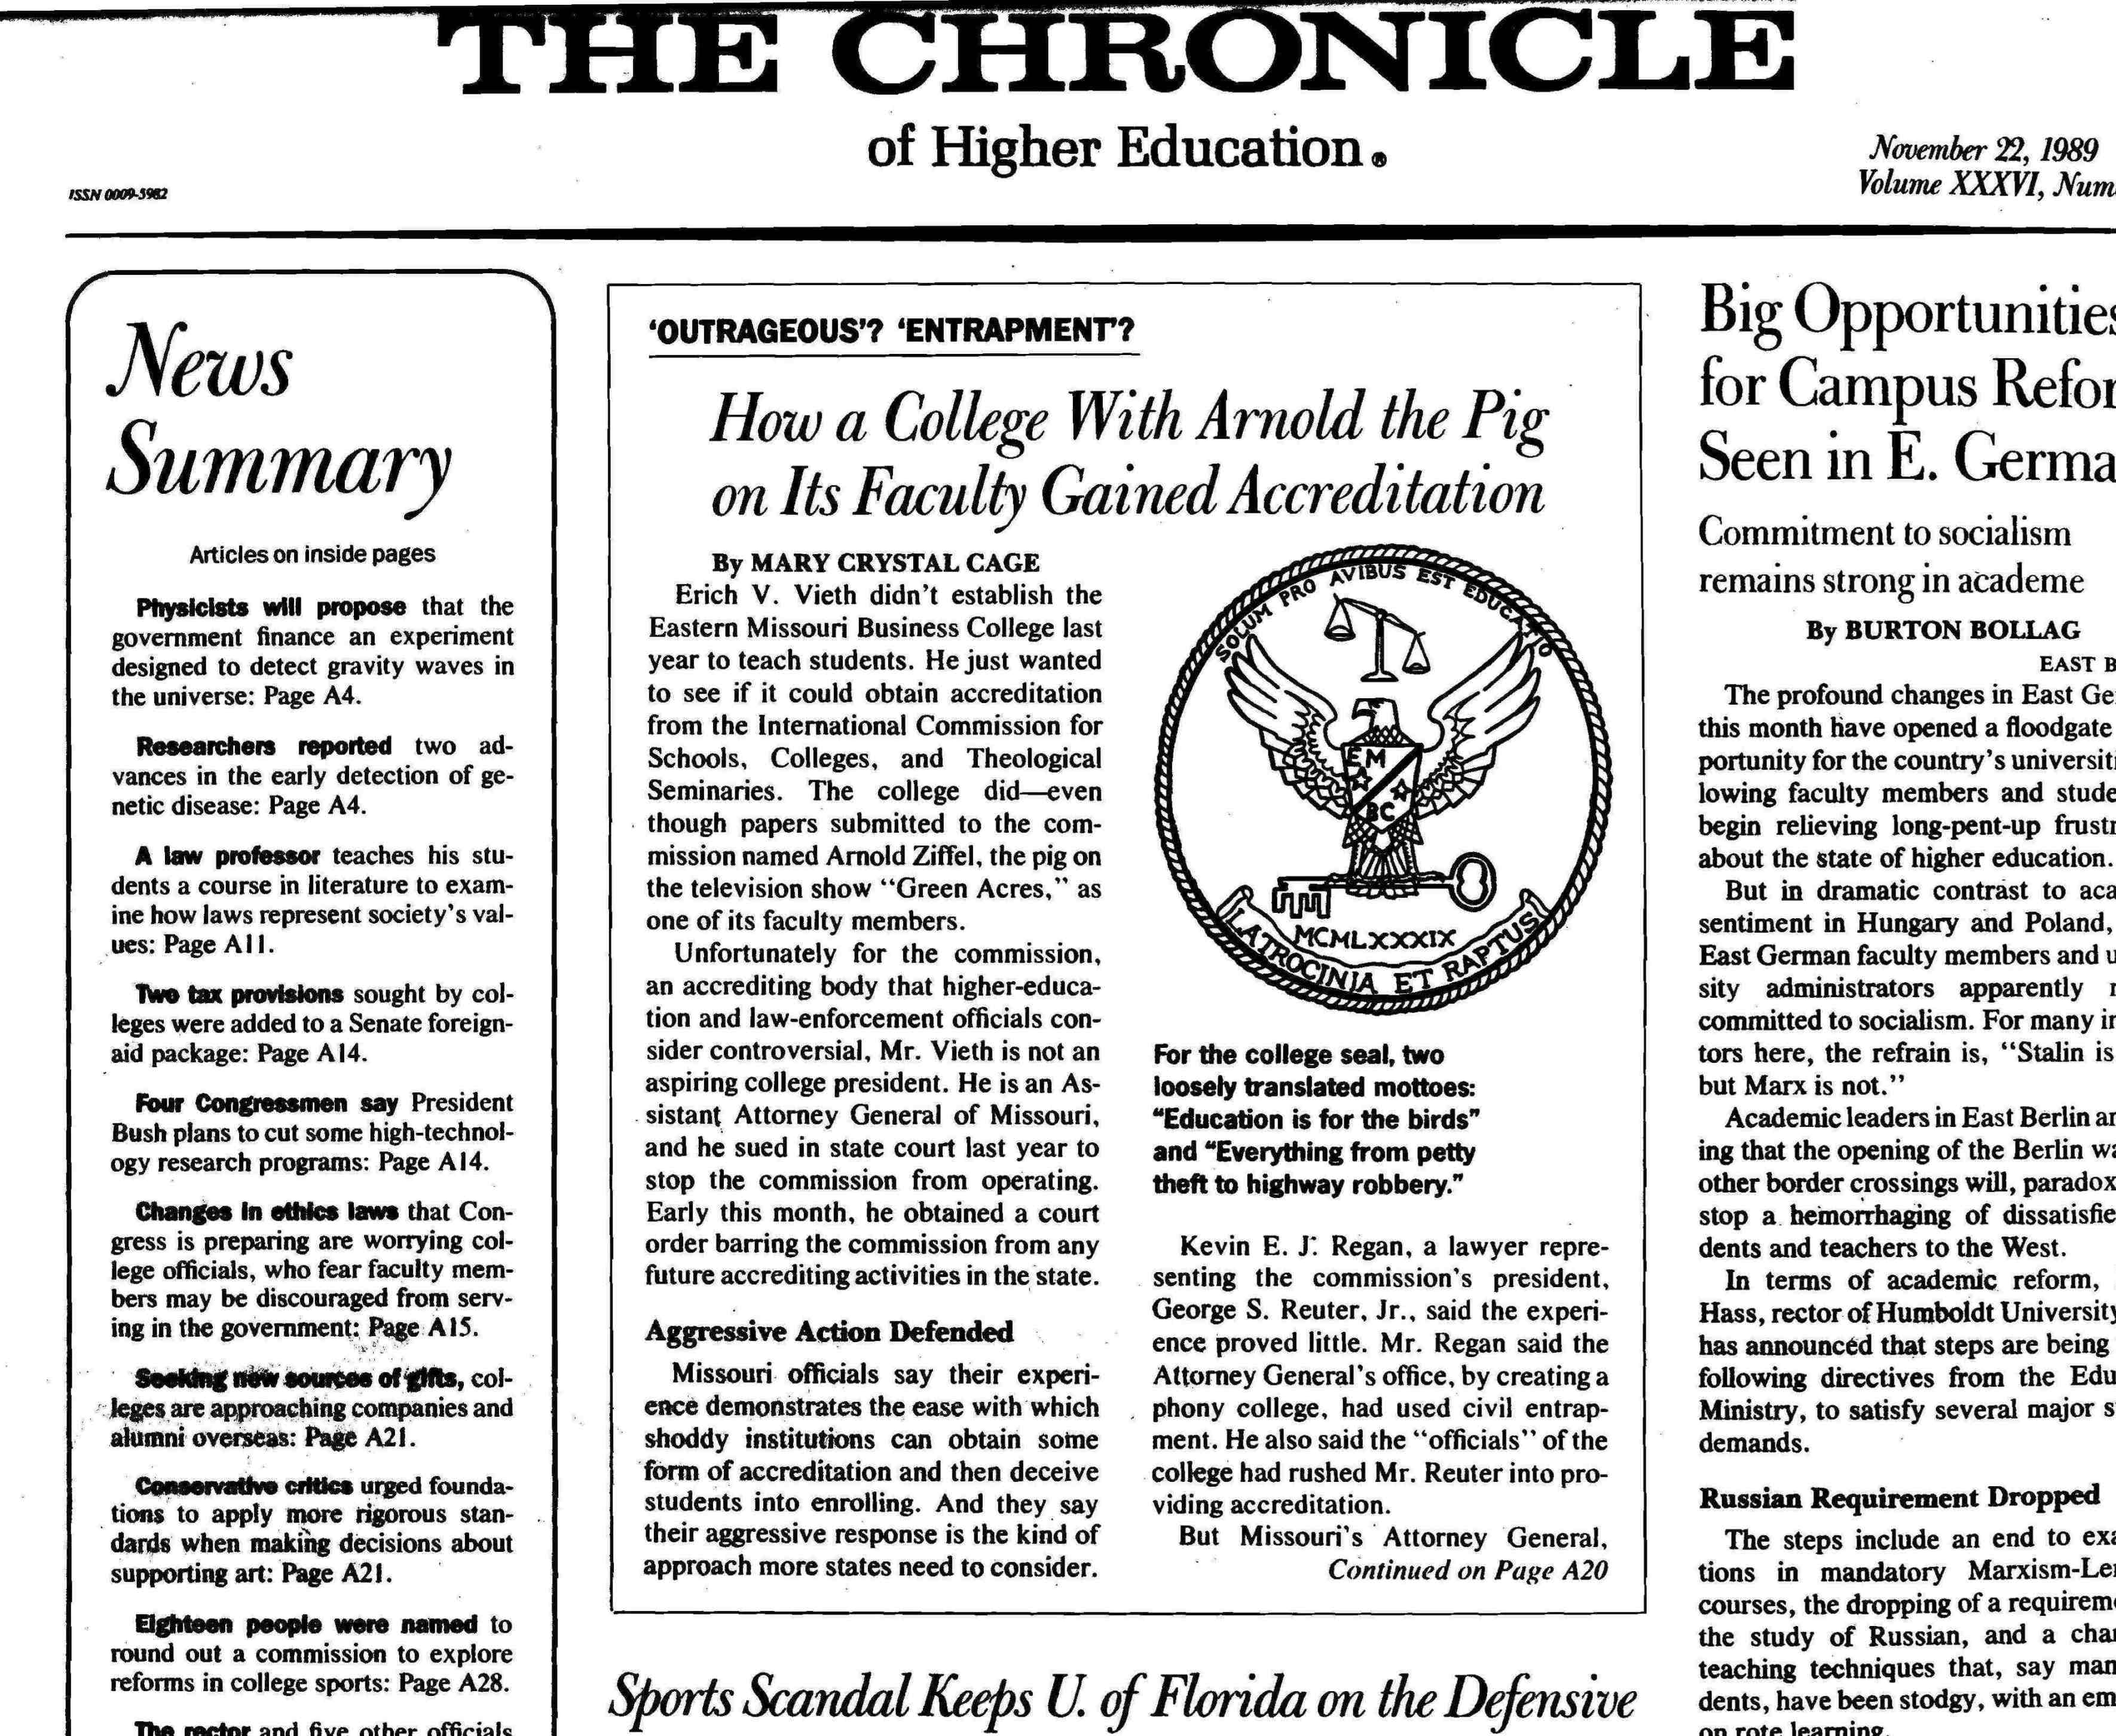 chronicle-article-lo-res.jpg